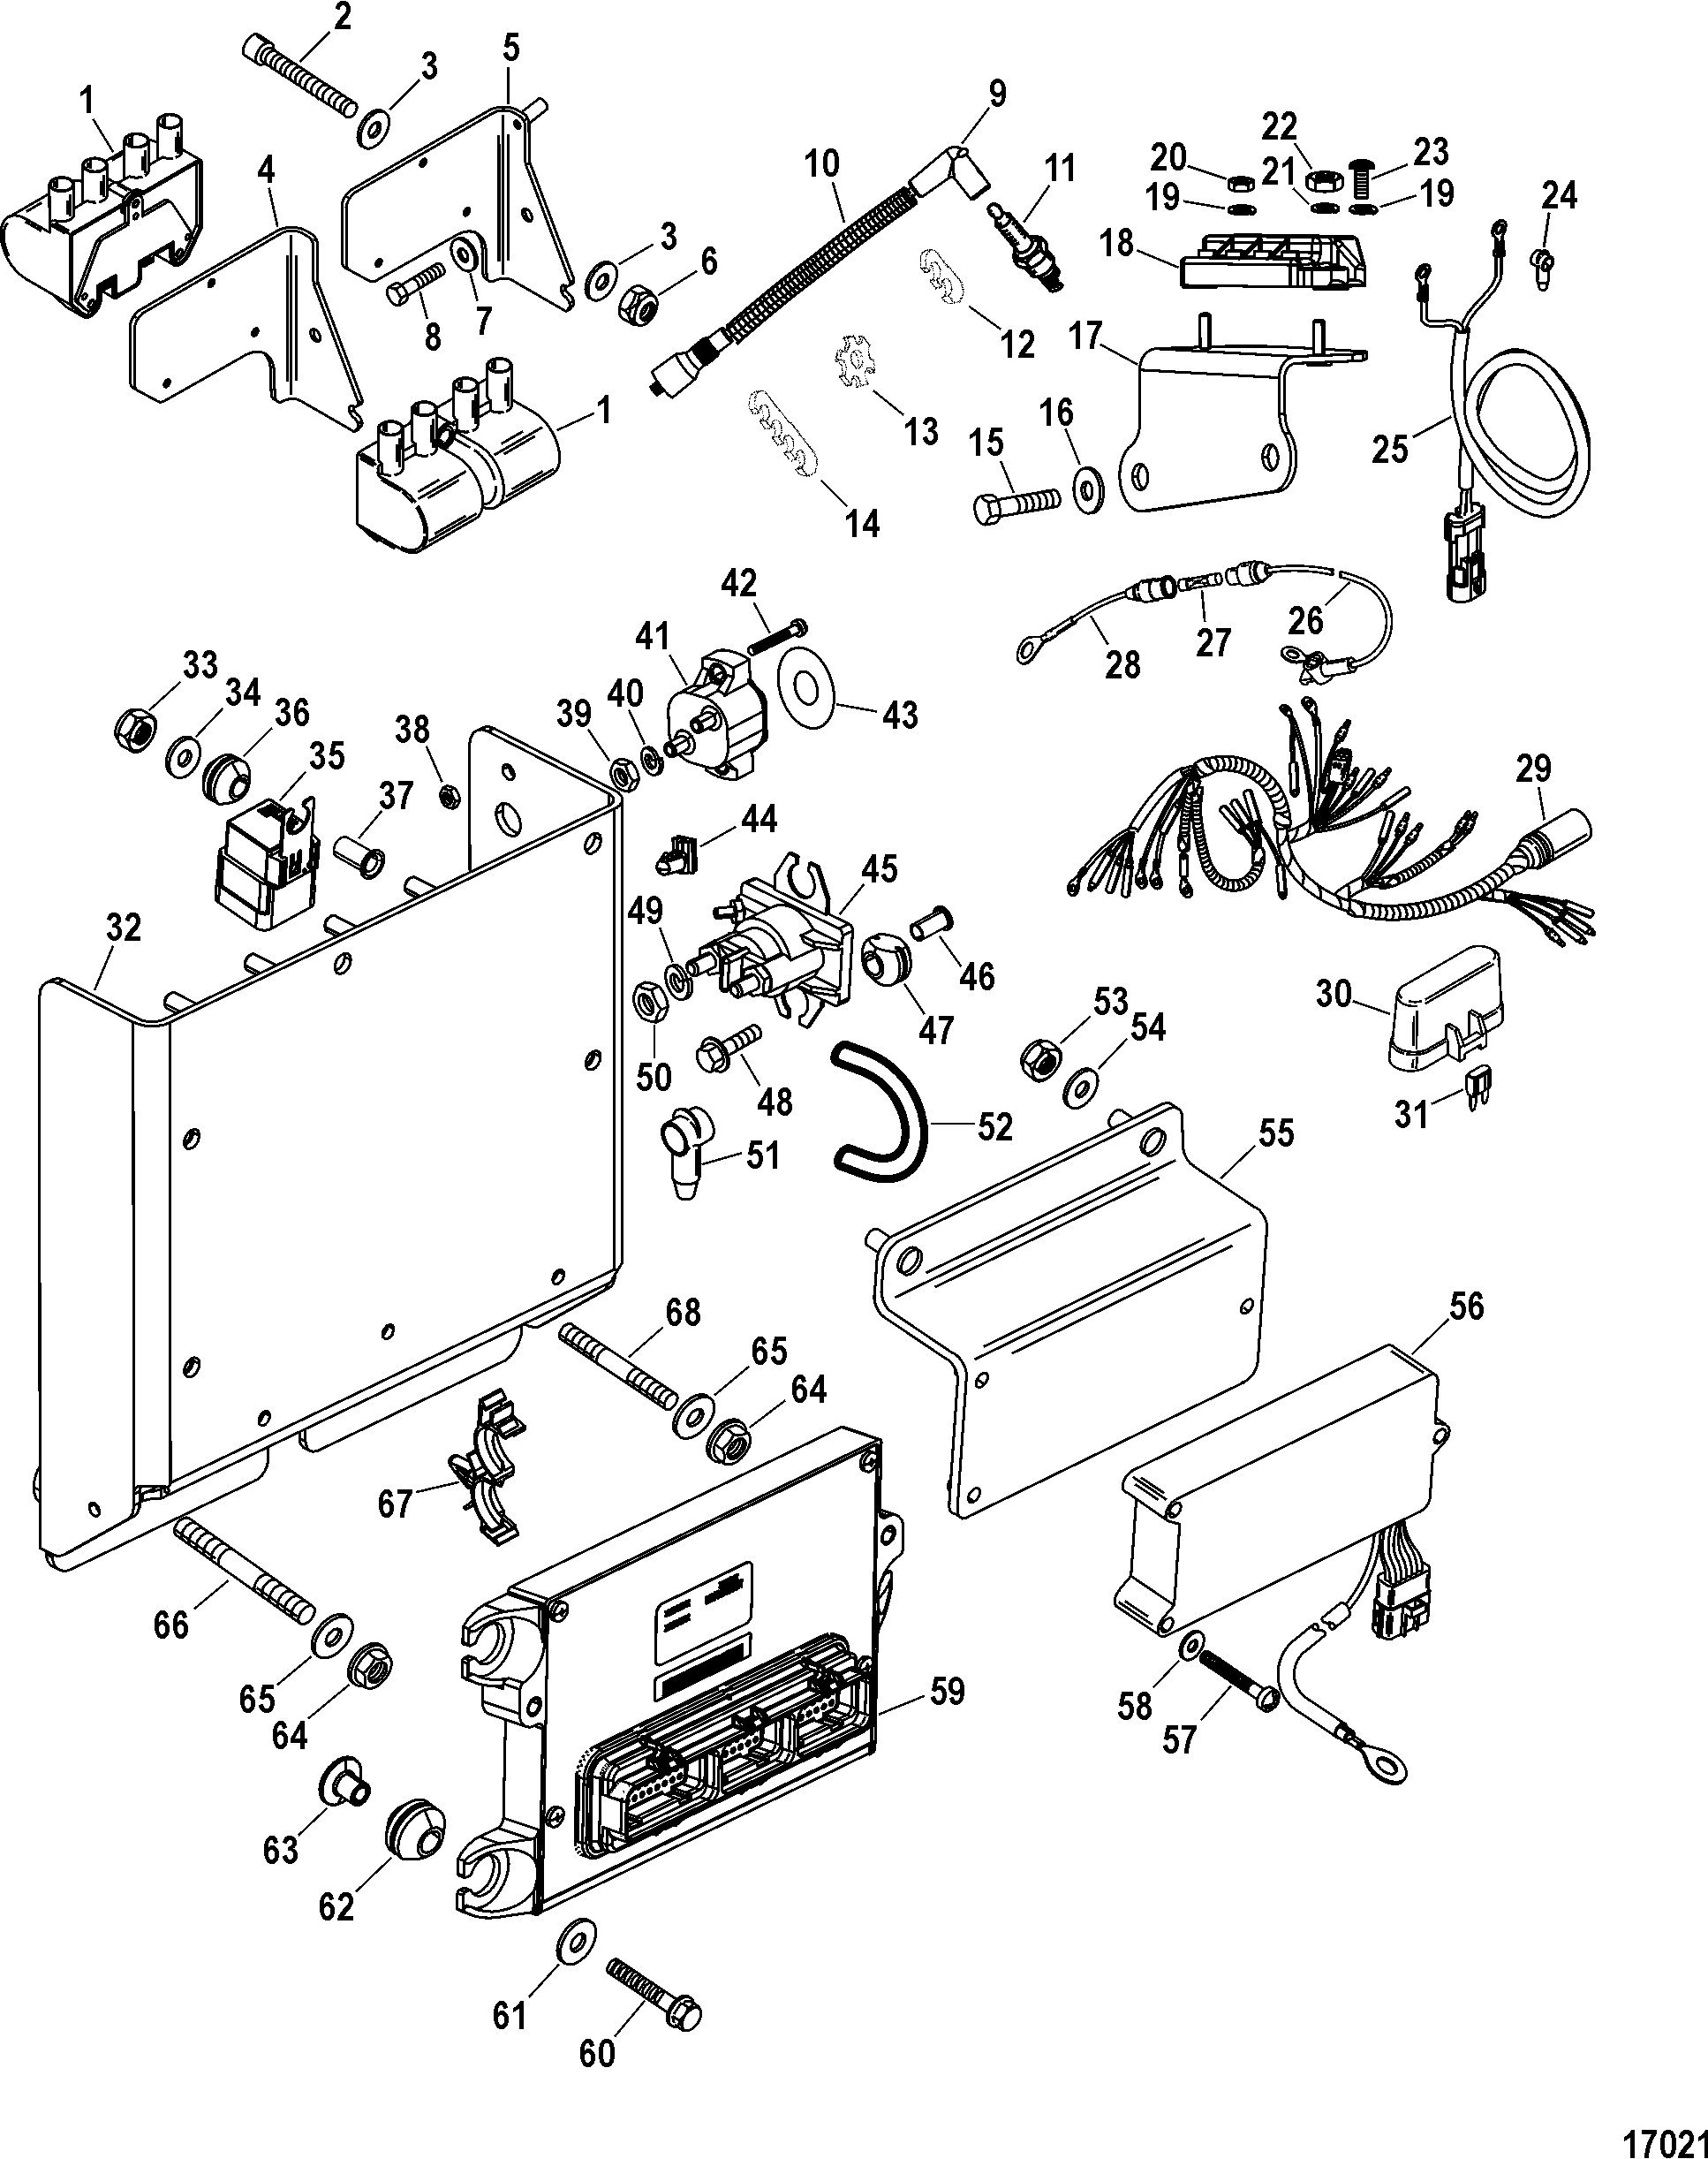 Hardin Marine - Electrical Components (Ignition) on